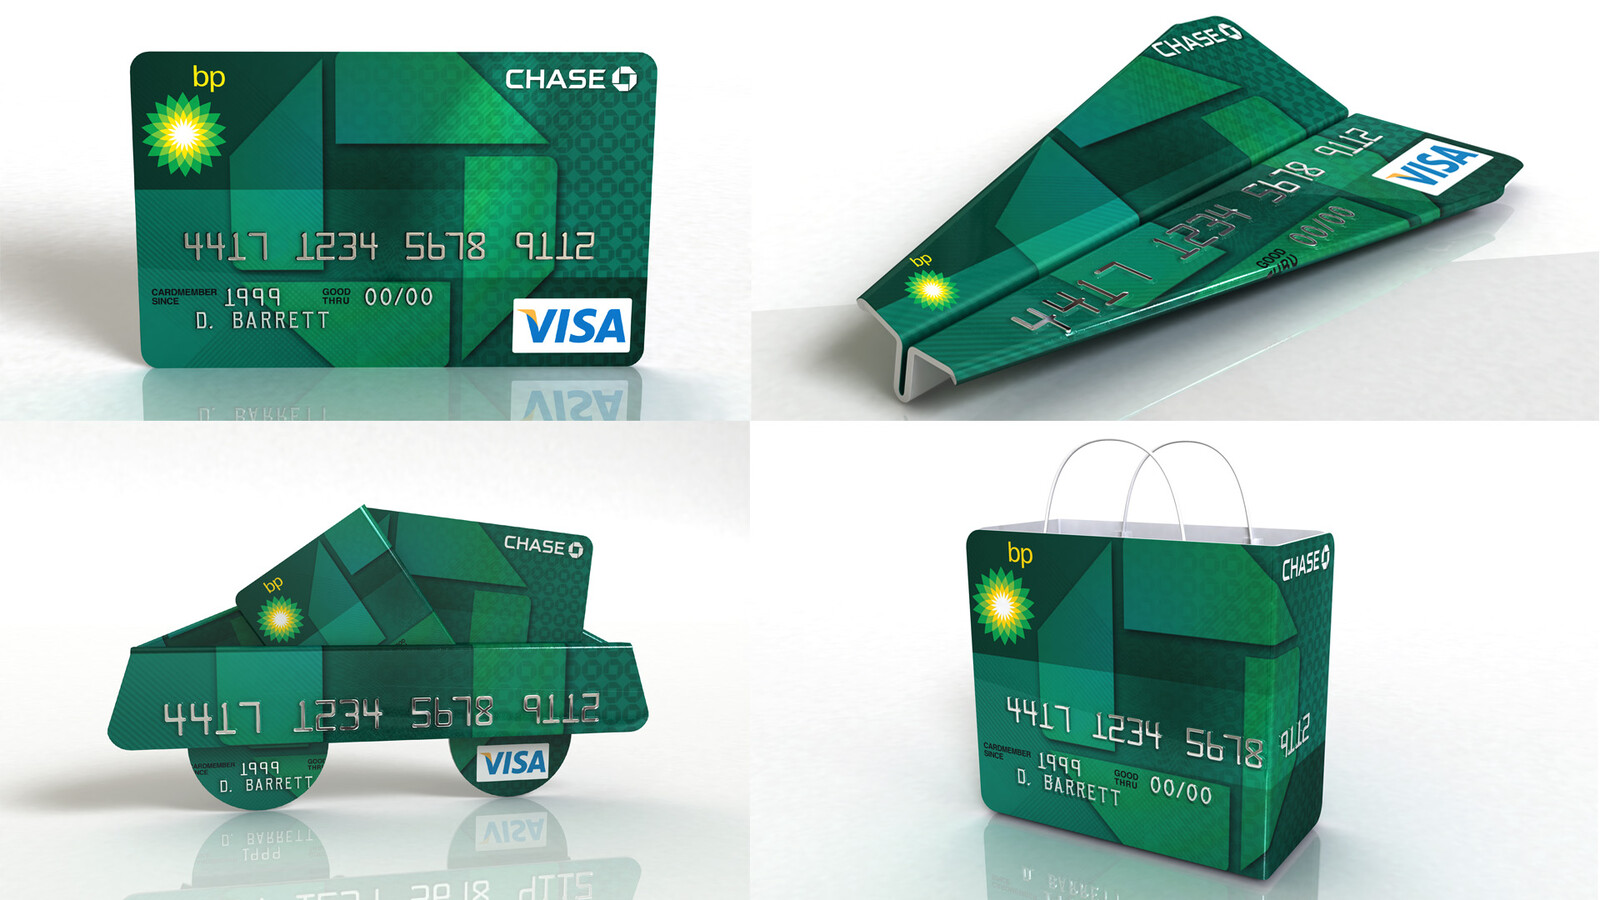 Four 3D illustrations to promote the BP Chase VISA card